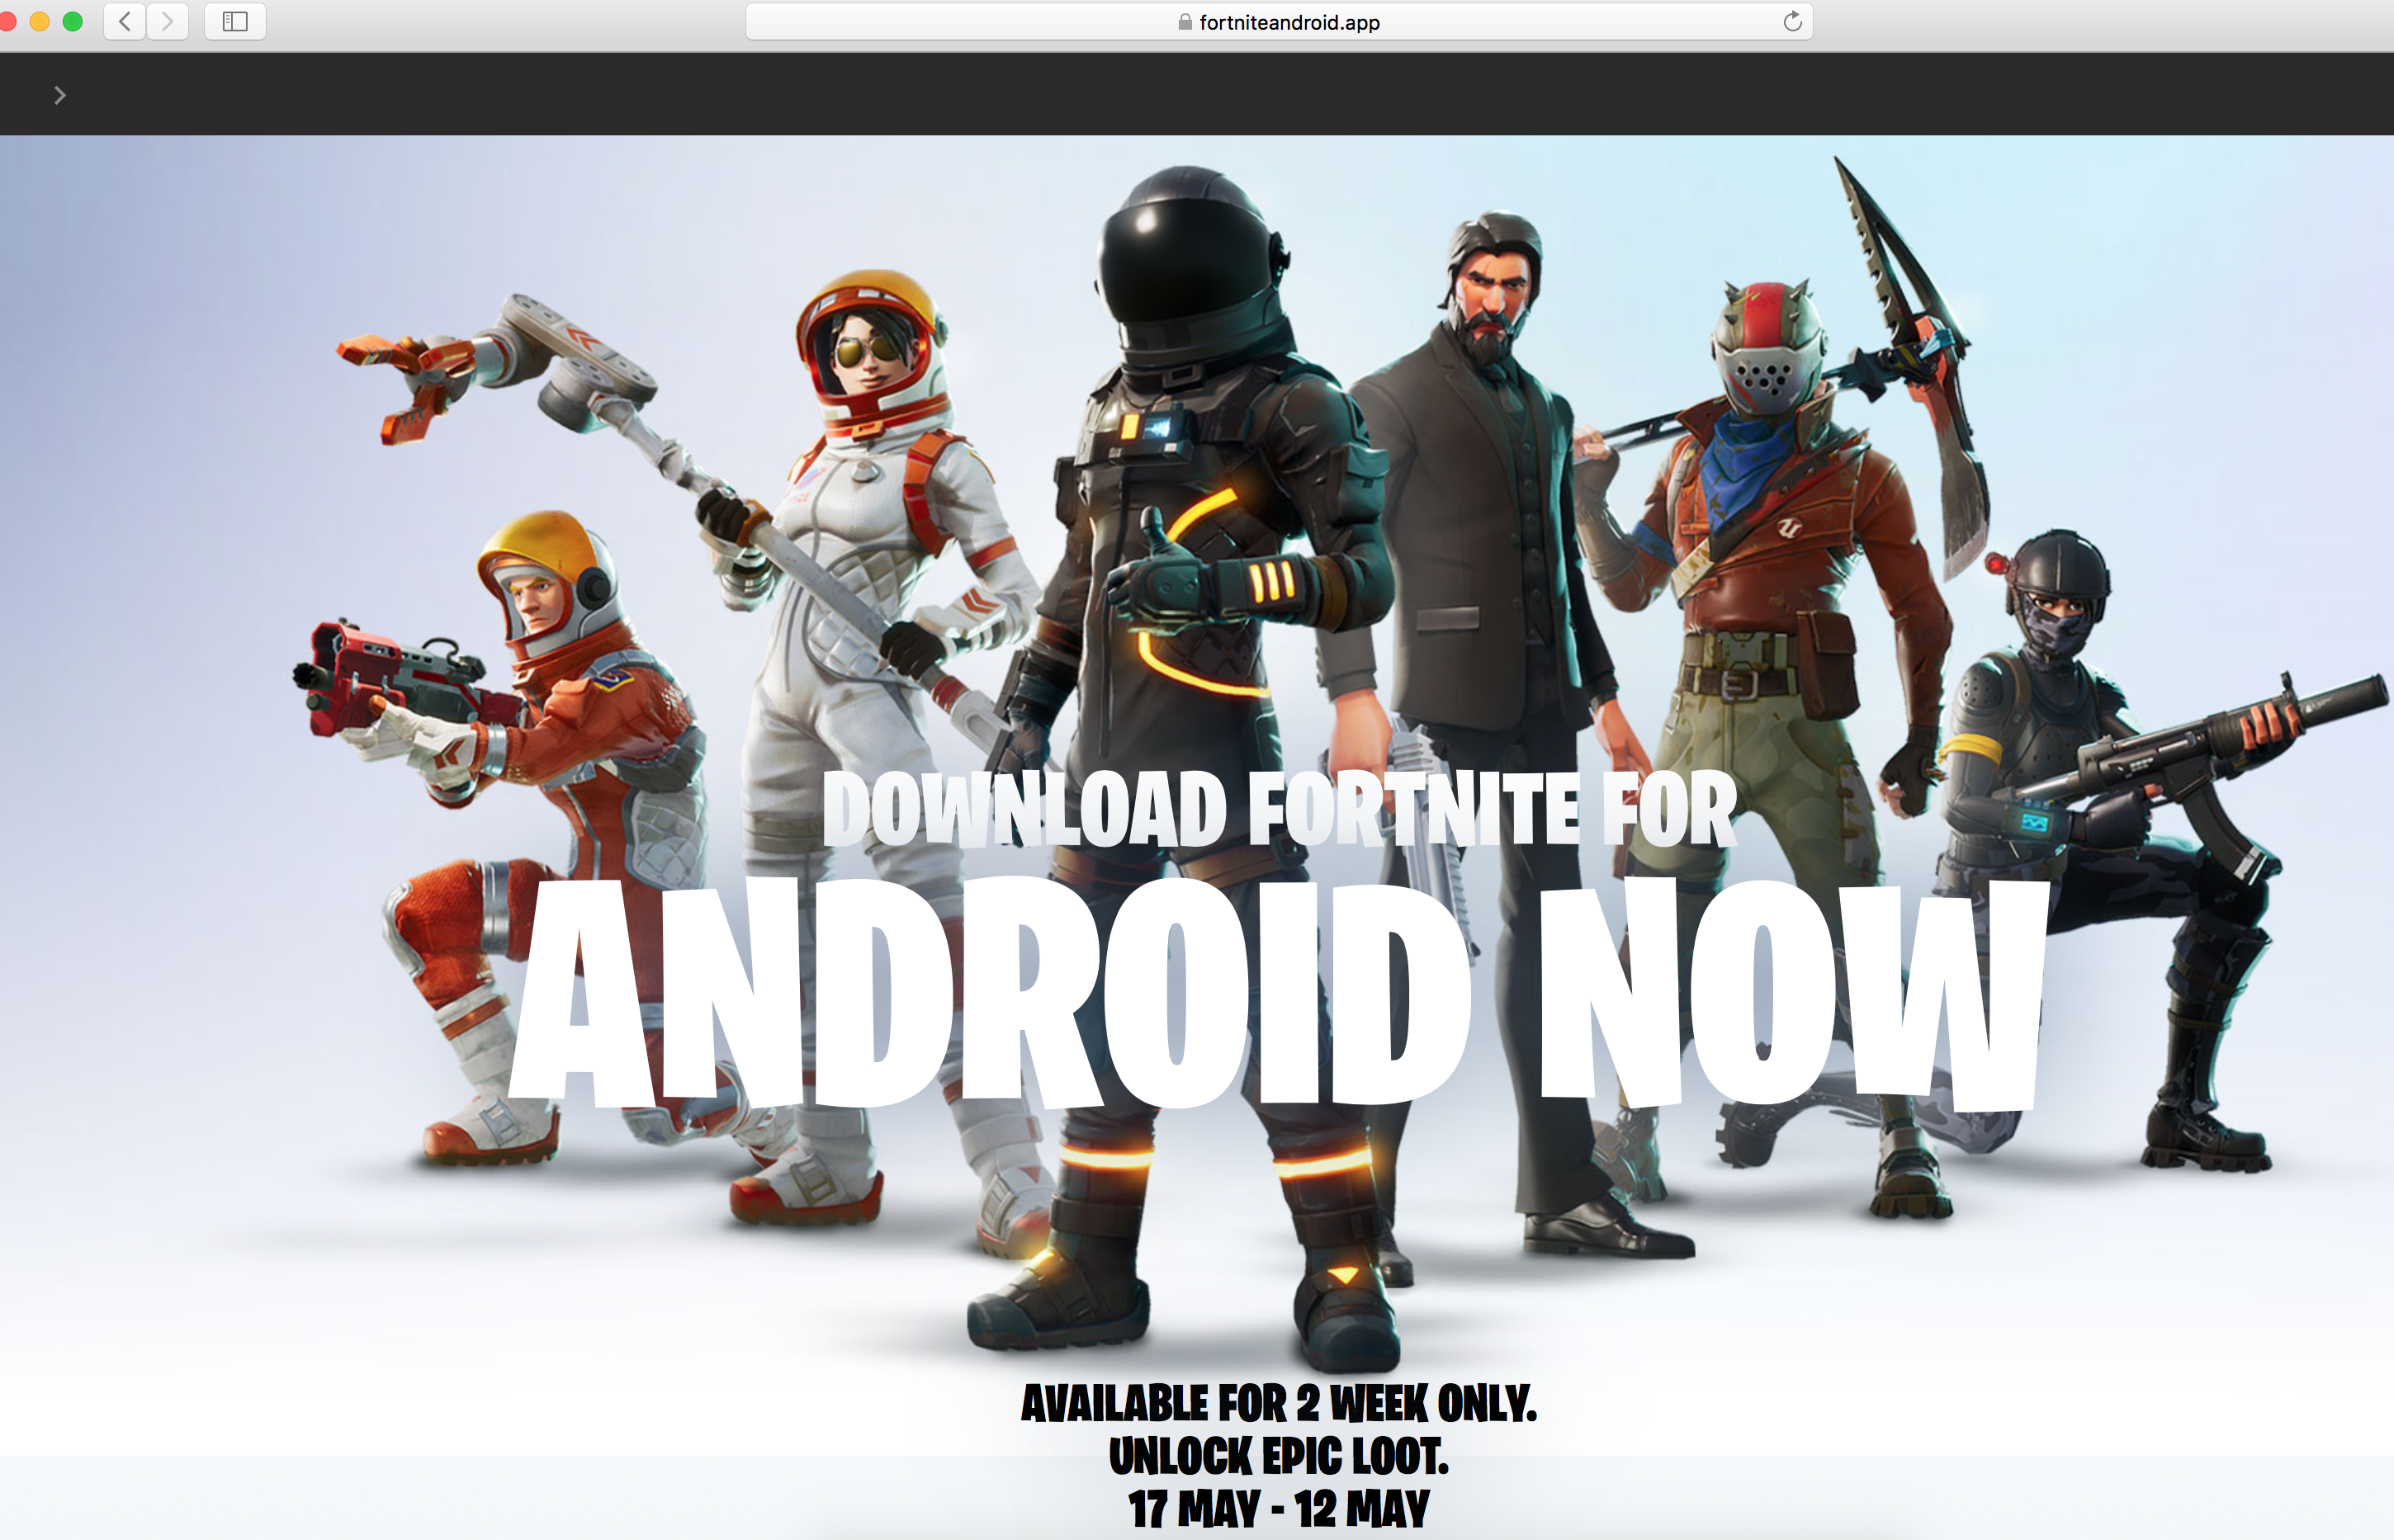 don t bother downloading leaked fortnite apk - fortnite android apk download